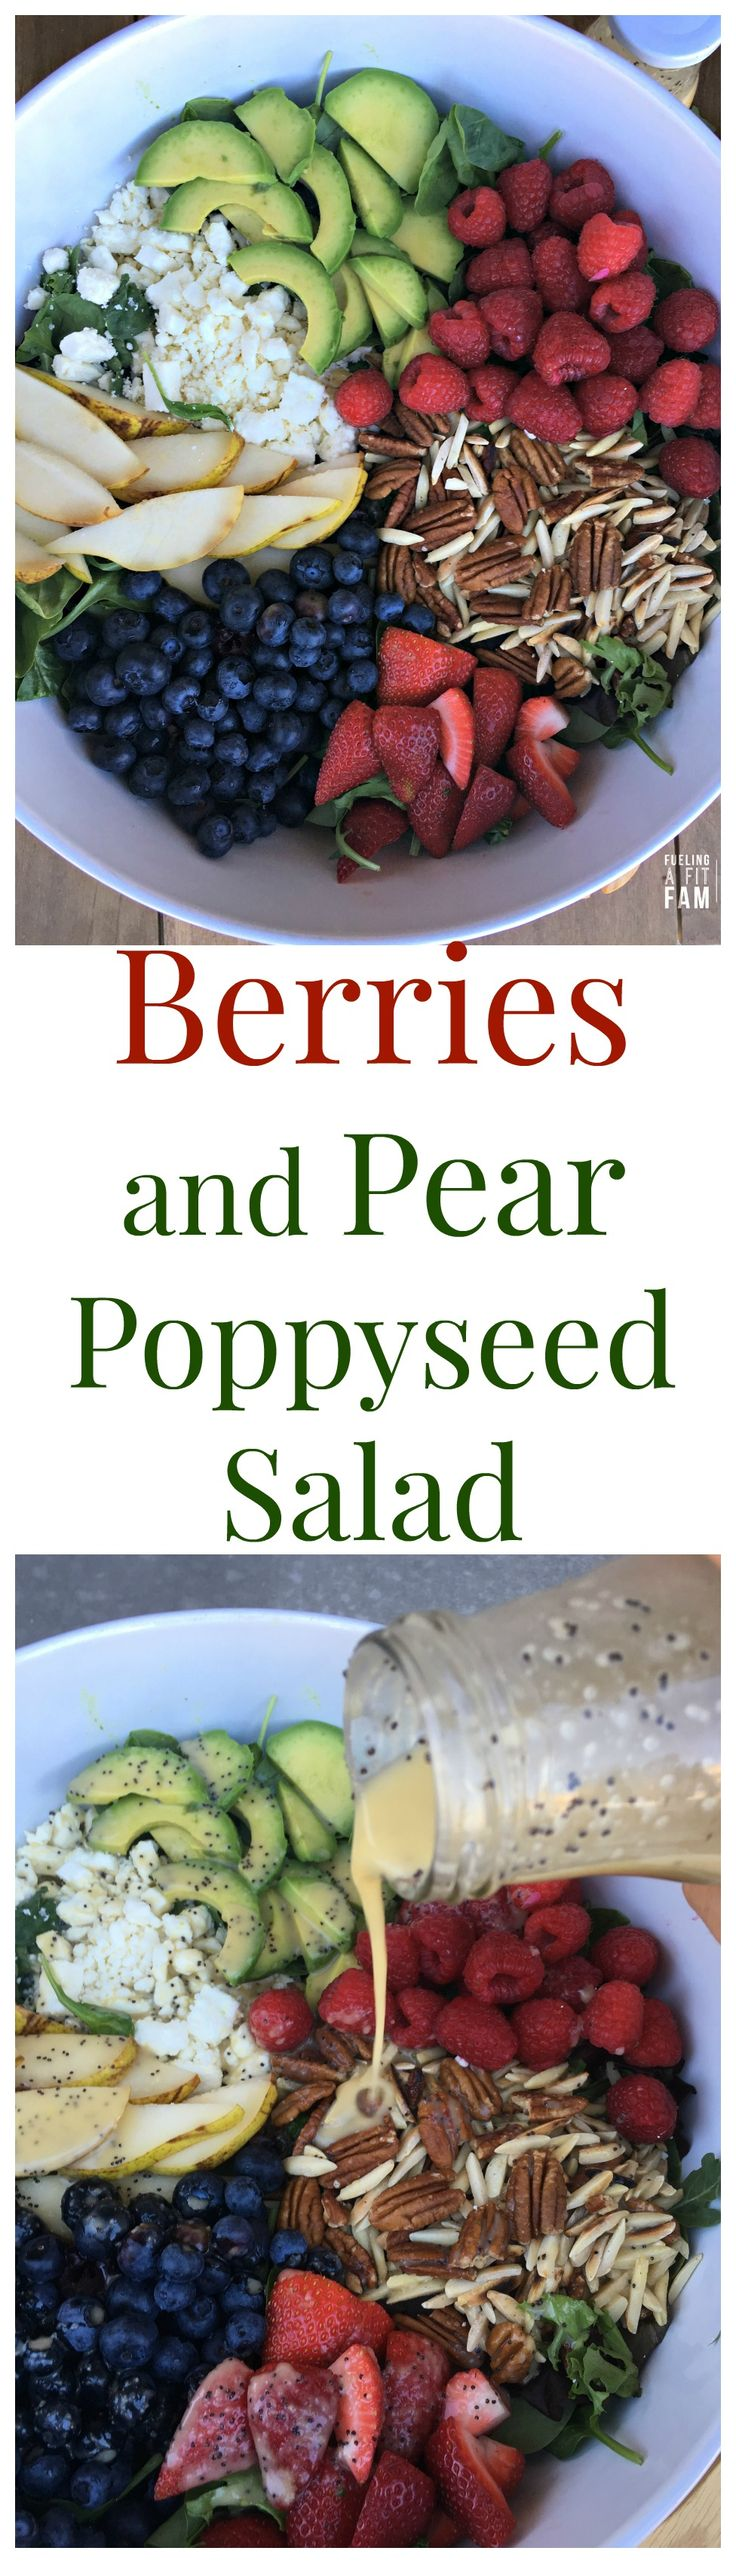 This Berries and Pear Poppyseed Salad is the perfect summer salad. The ...